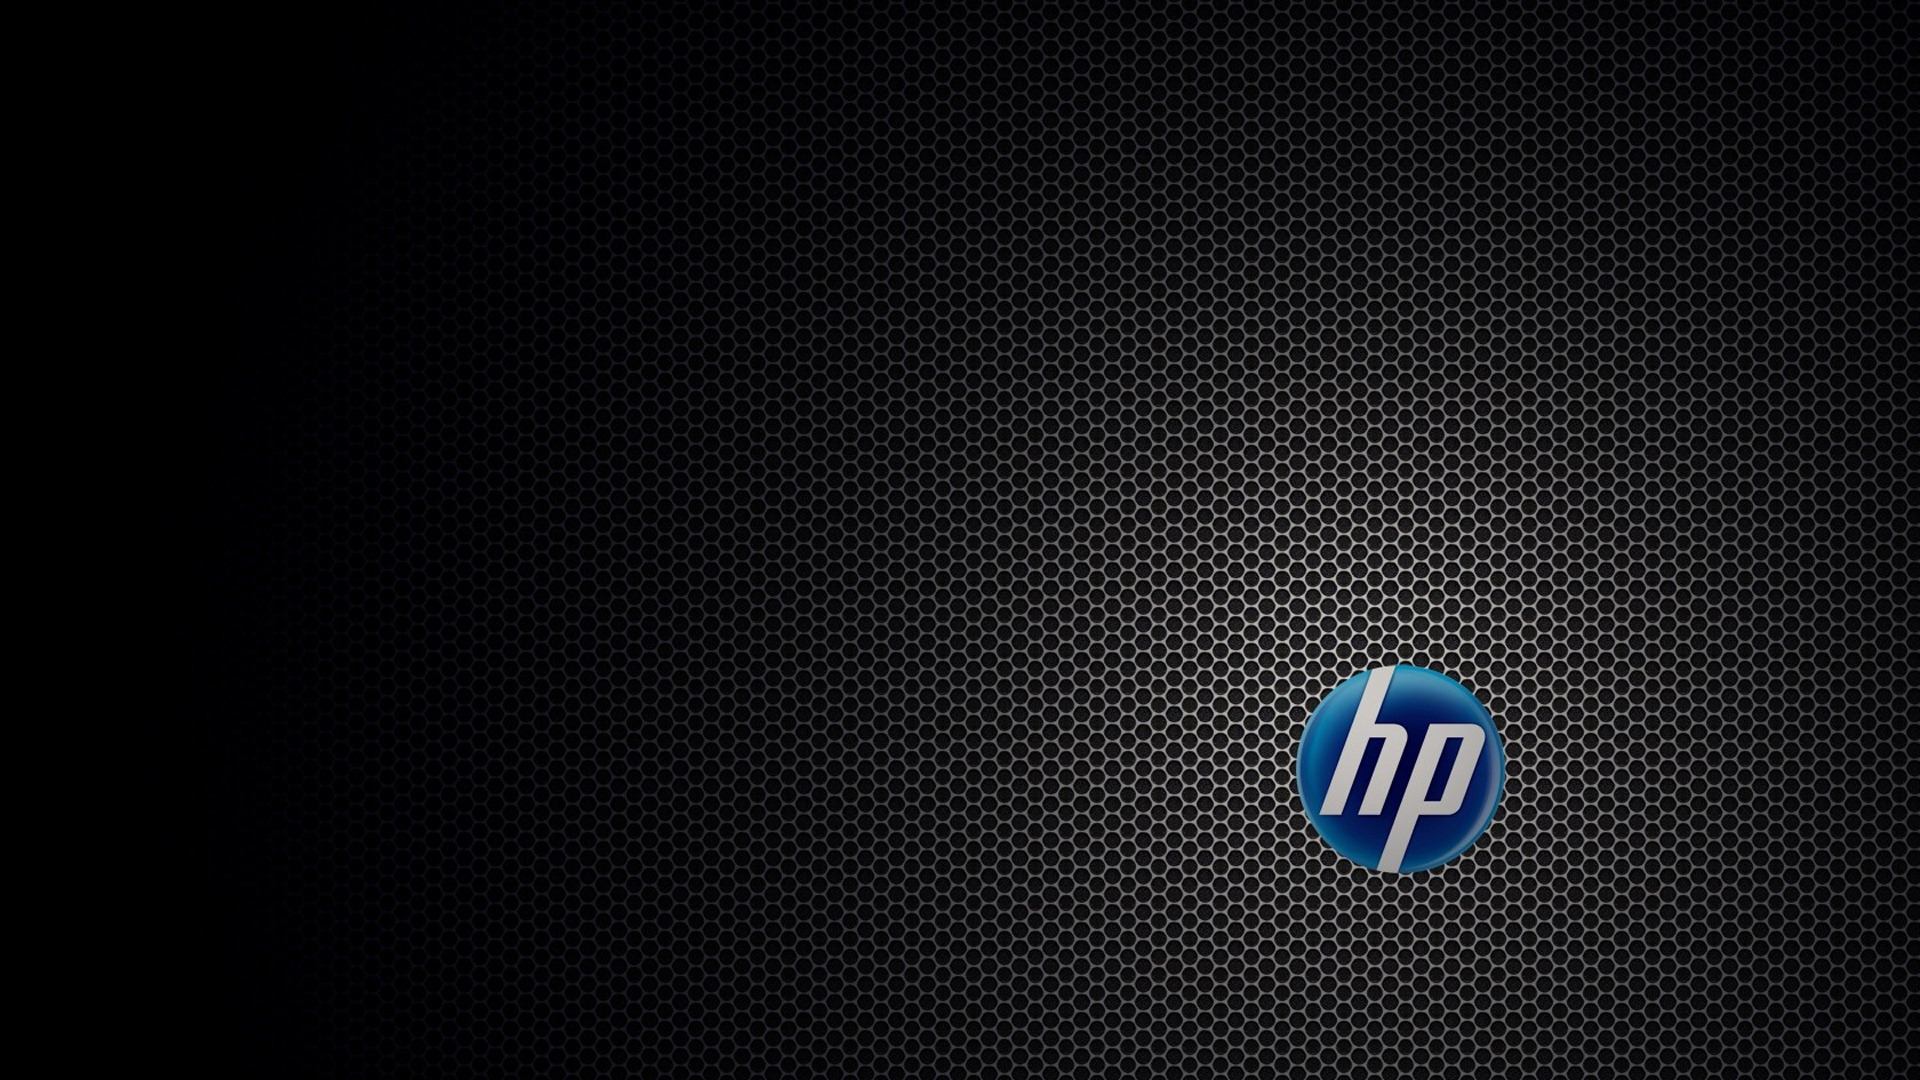 HP Wallpaper 1920x1080